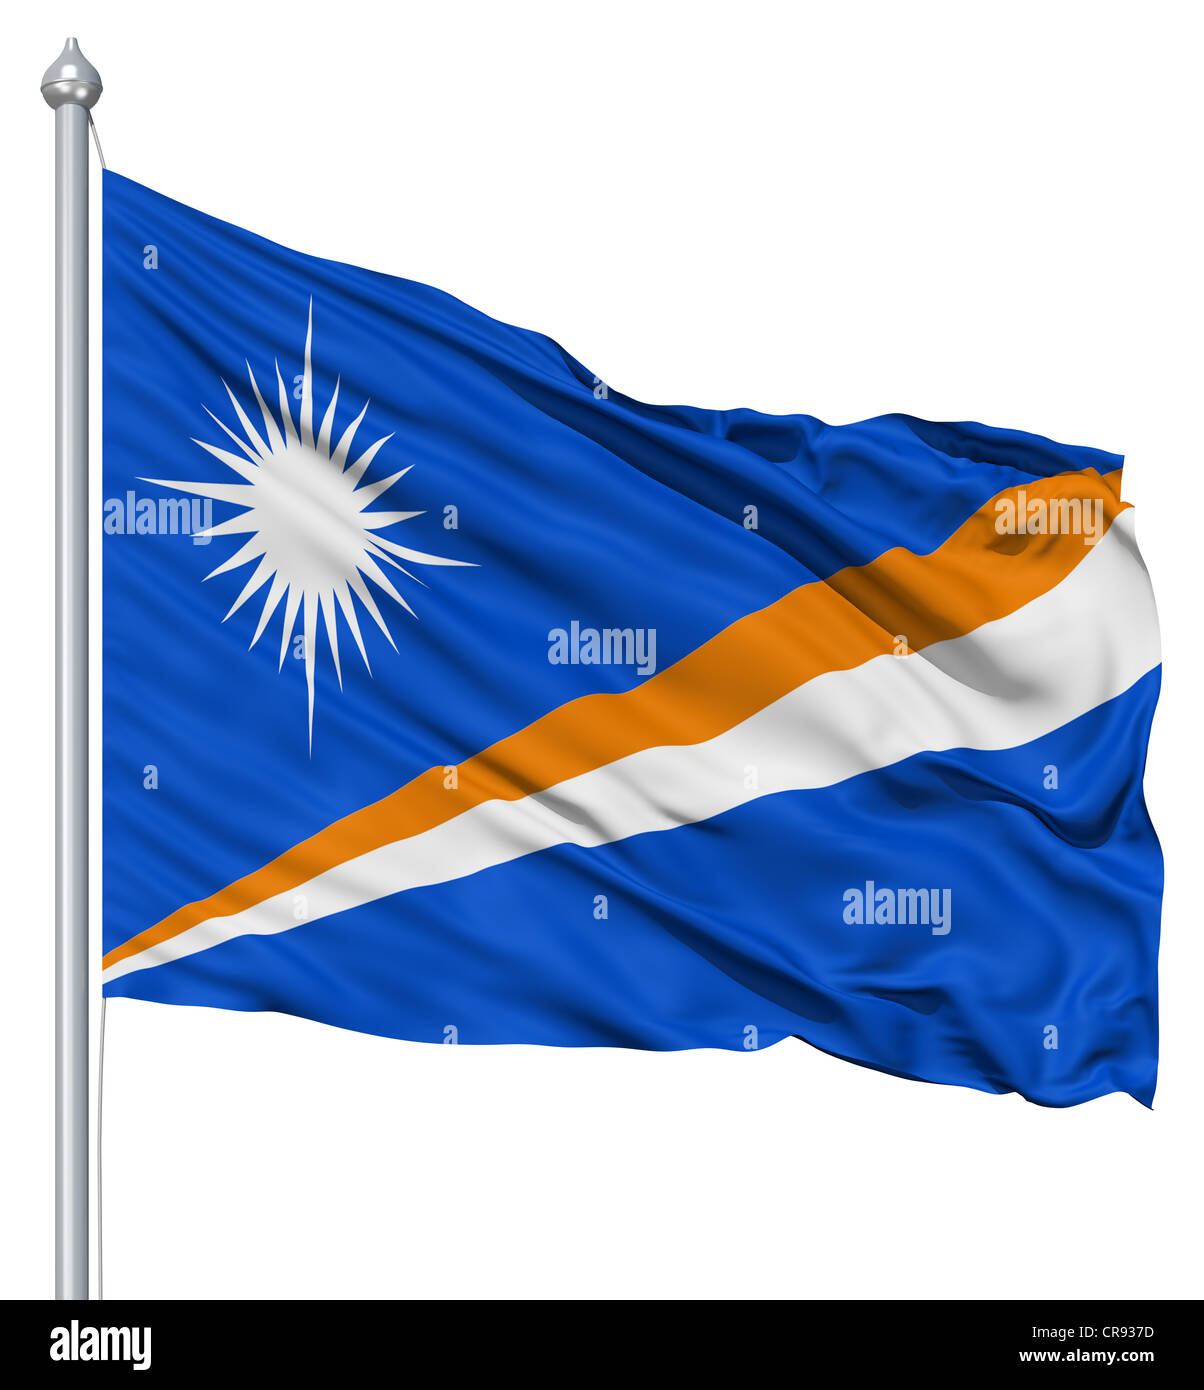 Flag of Marshall Islands with flagpole waving in the wind against white background - Stock Image